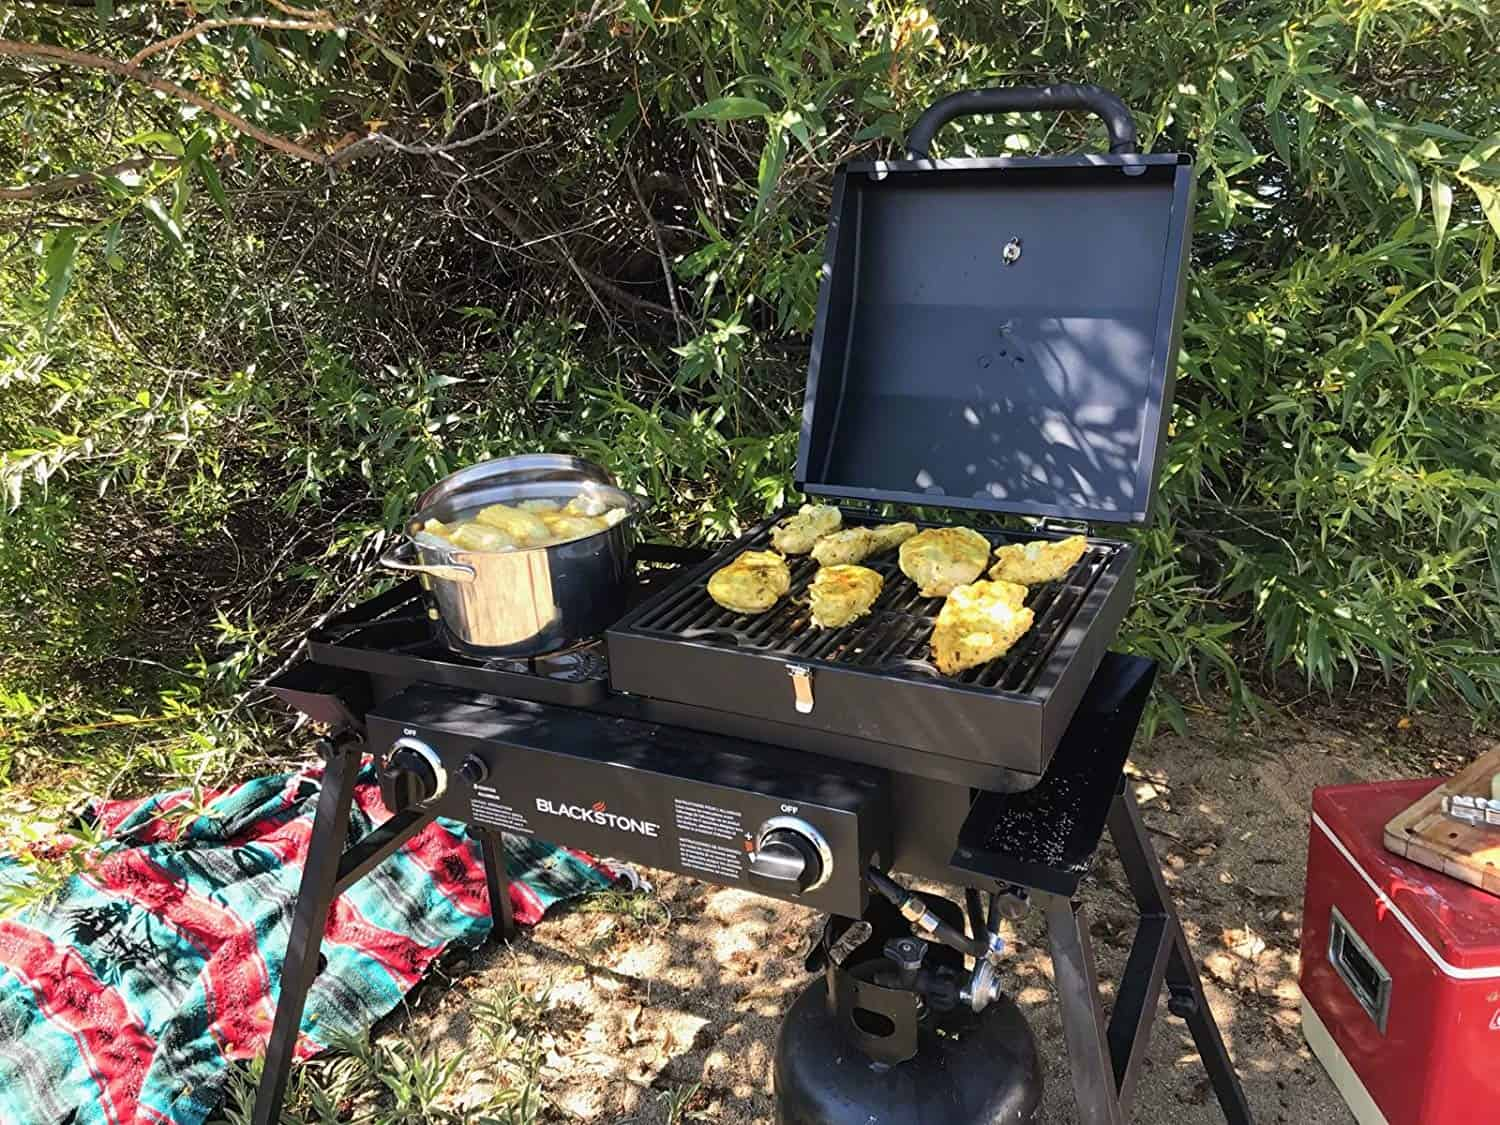 Blackstone Grills Tailgater grill griddle combo